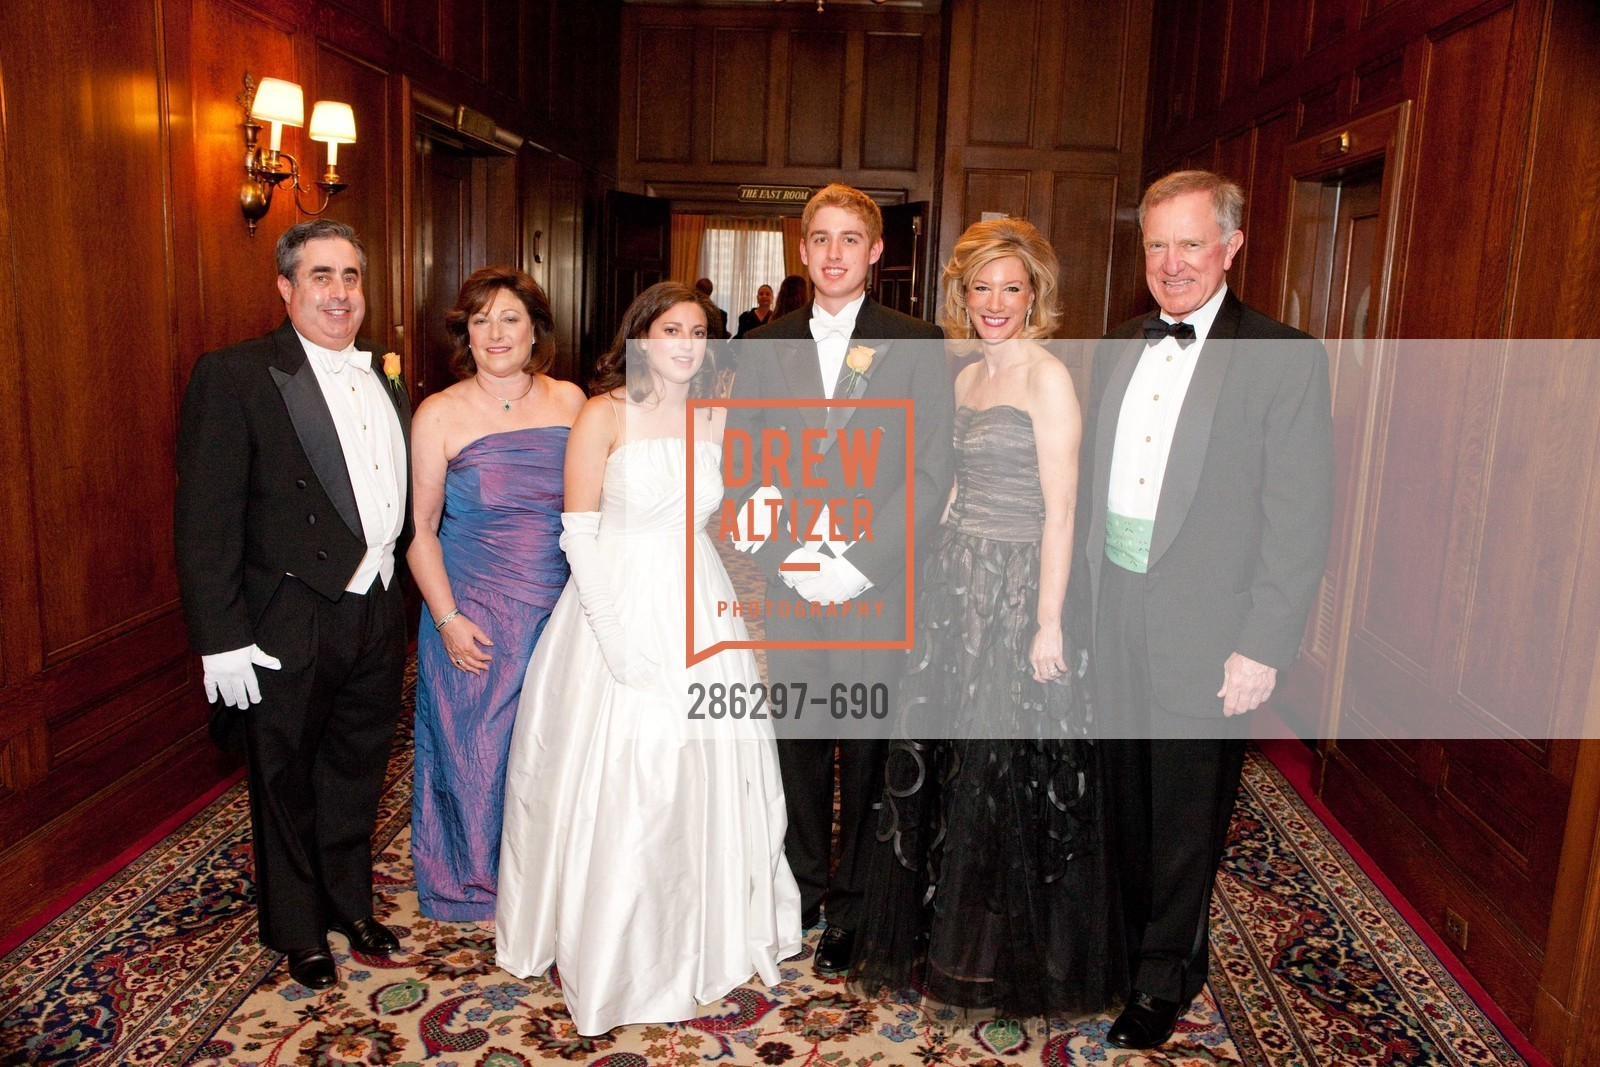 Sarah Greer Rosenbaum, Stratton Eoland, Mary Poland, Bill Poland, 2009 Debutante Ball, Unknown, July 4th, 2008,Drew Altizer, Drew Altizer Photography, full-service agency, private events, San Francisco photographer, photographer california